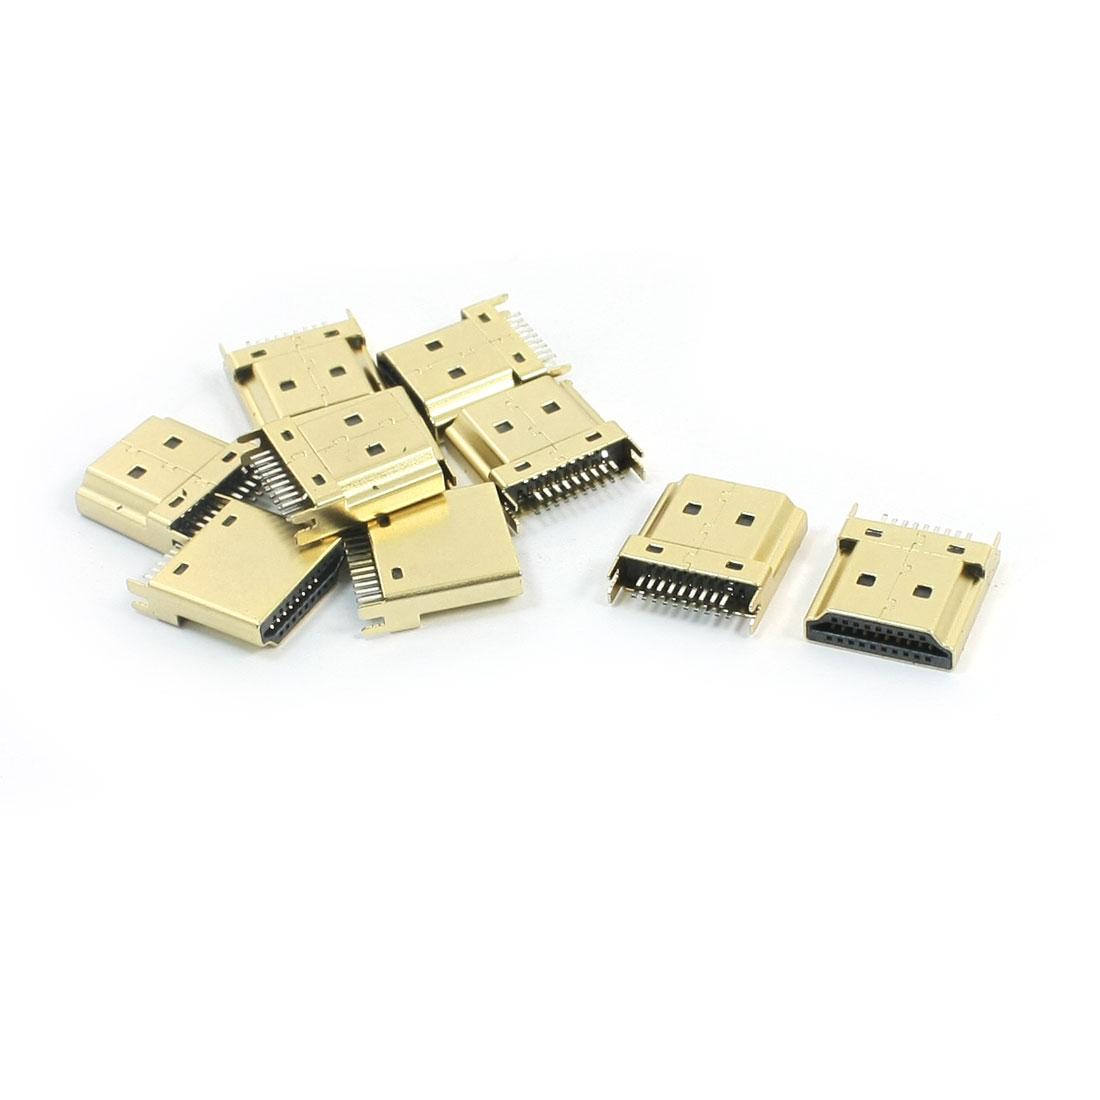 10PCS 1.0mm Micro Female HDMI Jack Socket 19Pins 4 Legs DIP 180 Degree